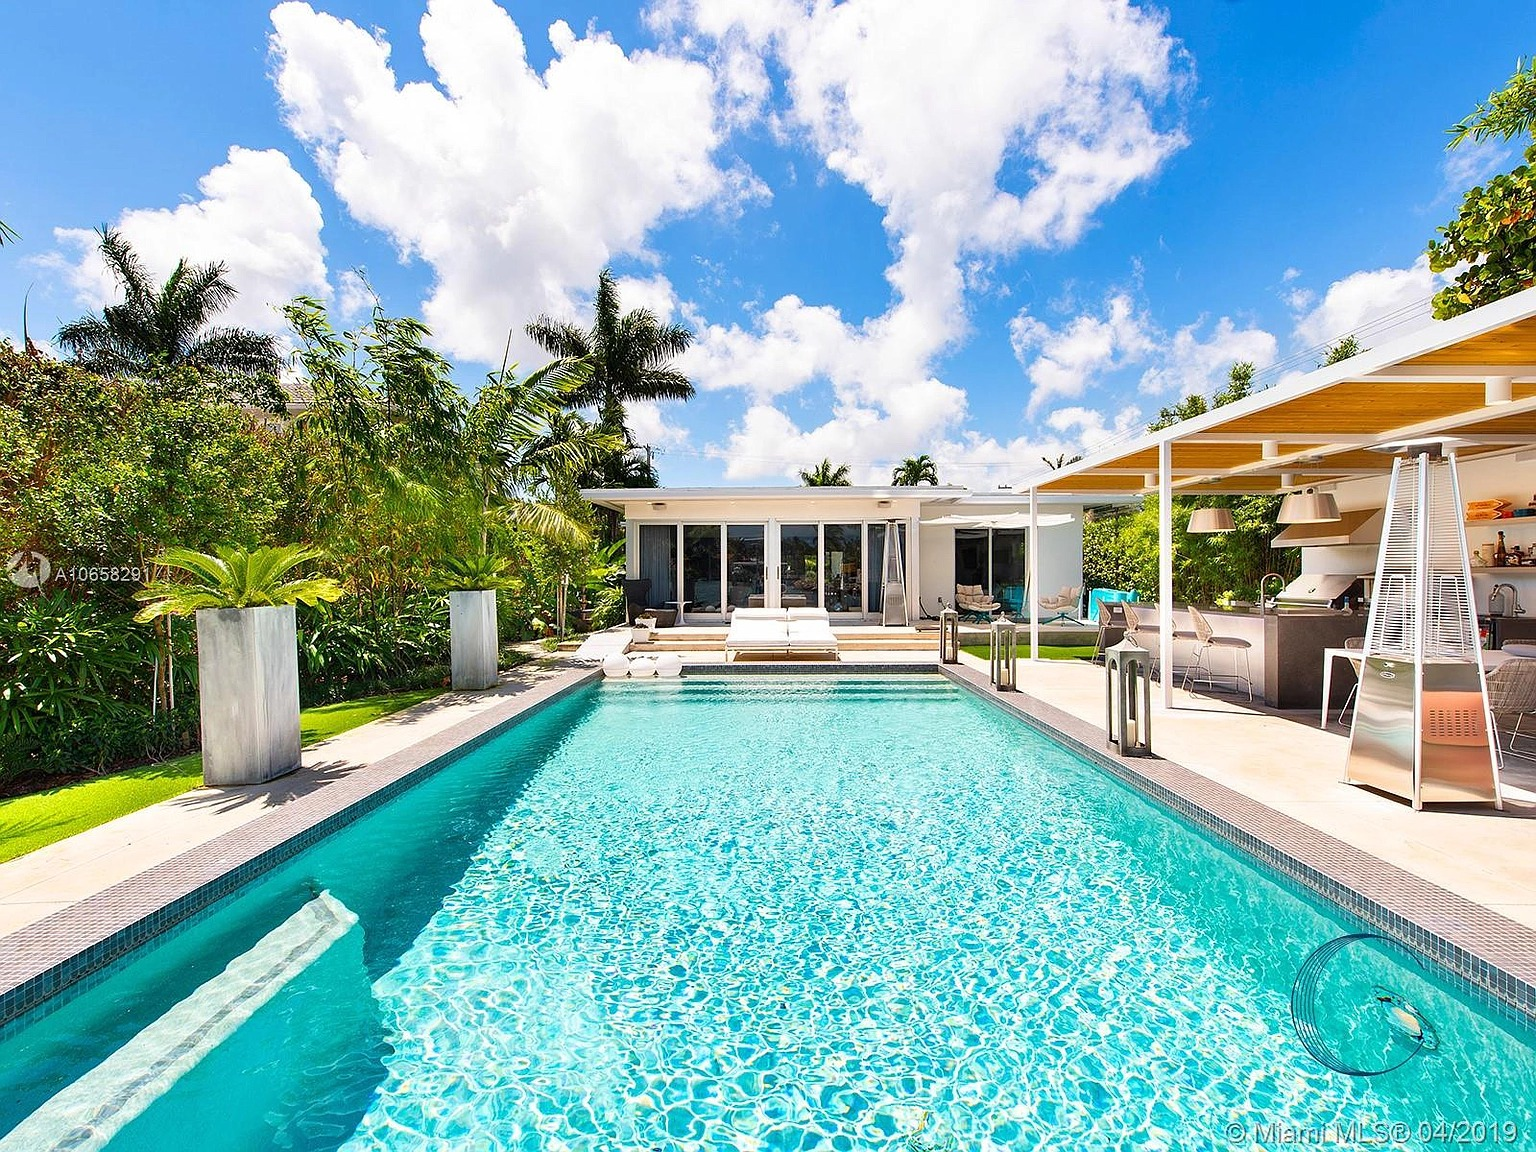 425 E Dilido Dr, Miami Beach, FL 33139 - $6,390,000 home for sale, house images, photos and pics gallery